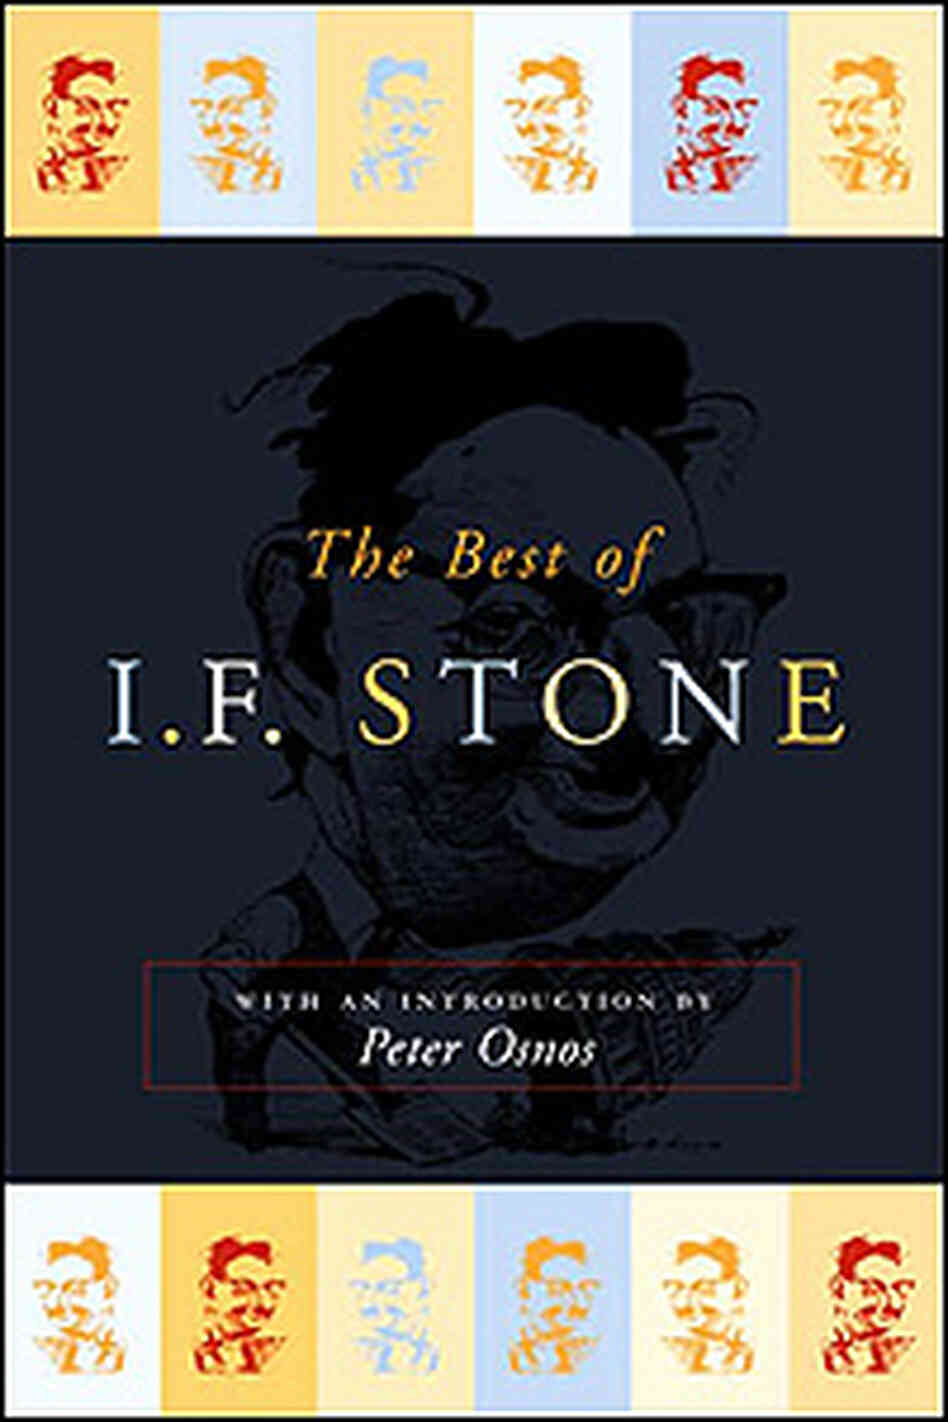 A caricature of I.F. Stone pays fond tribute to the investigative journalist on his collected work